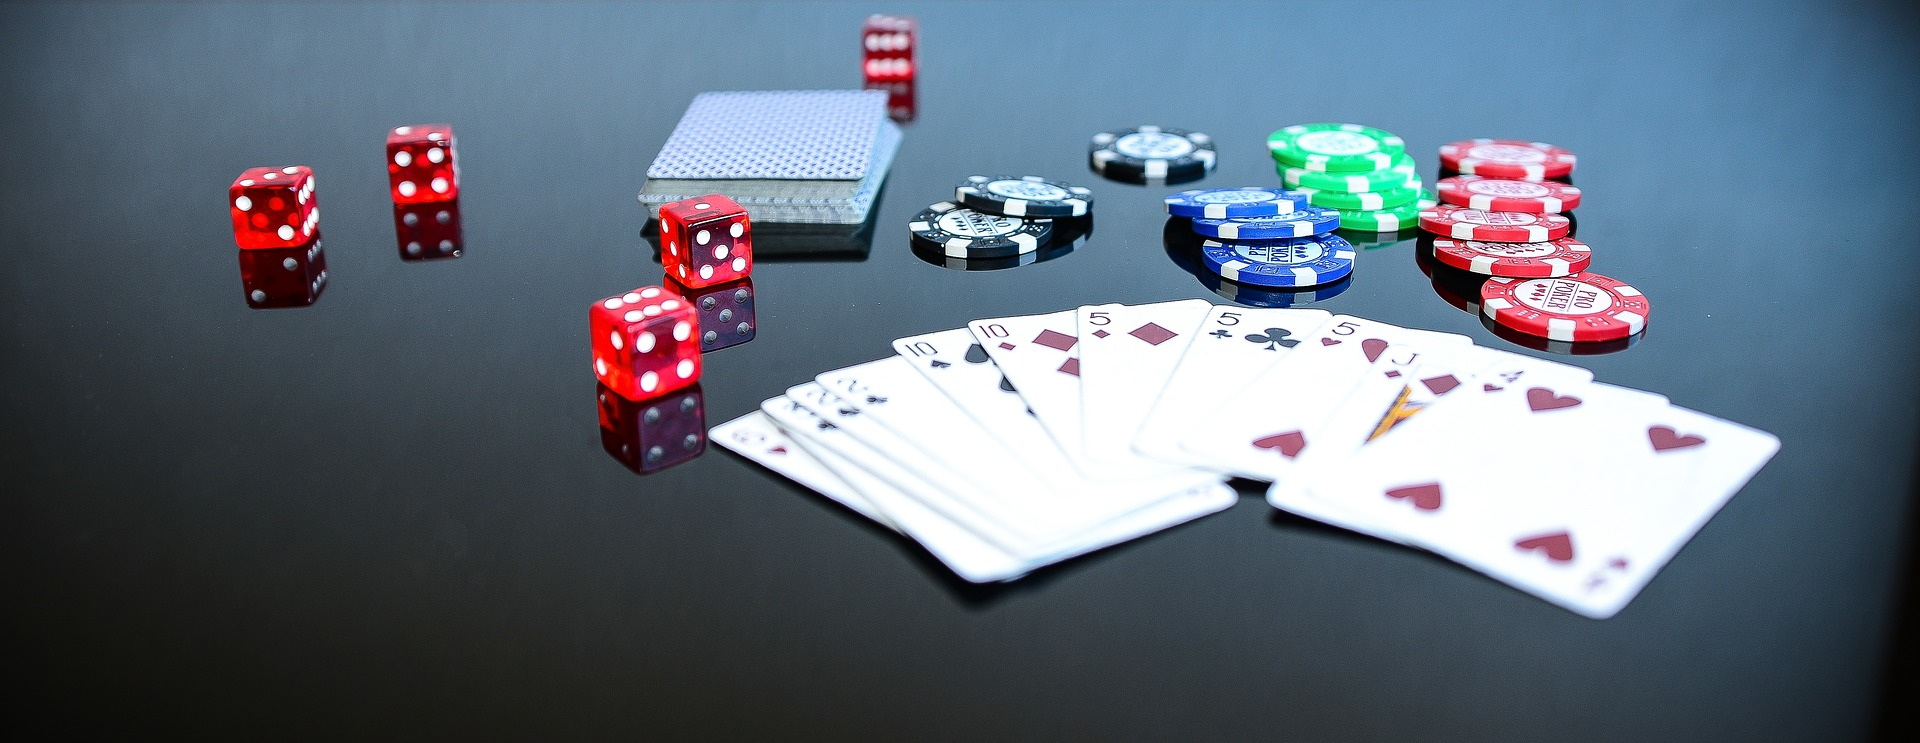 Advantages of playing baccarat online - Are You Fashion